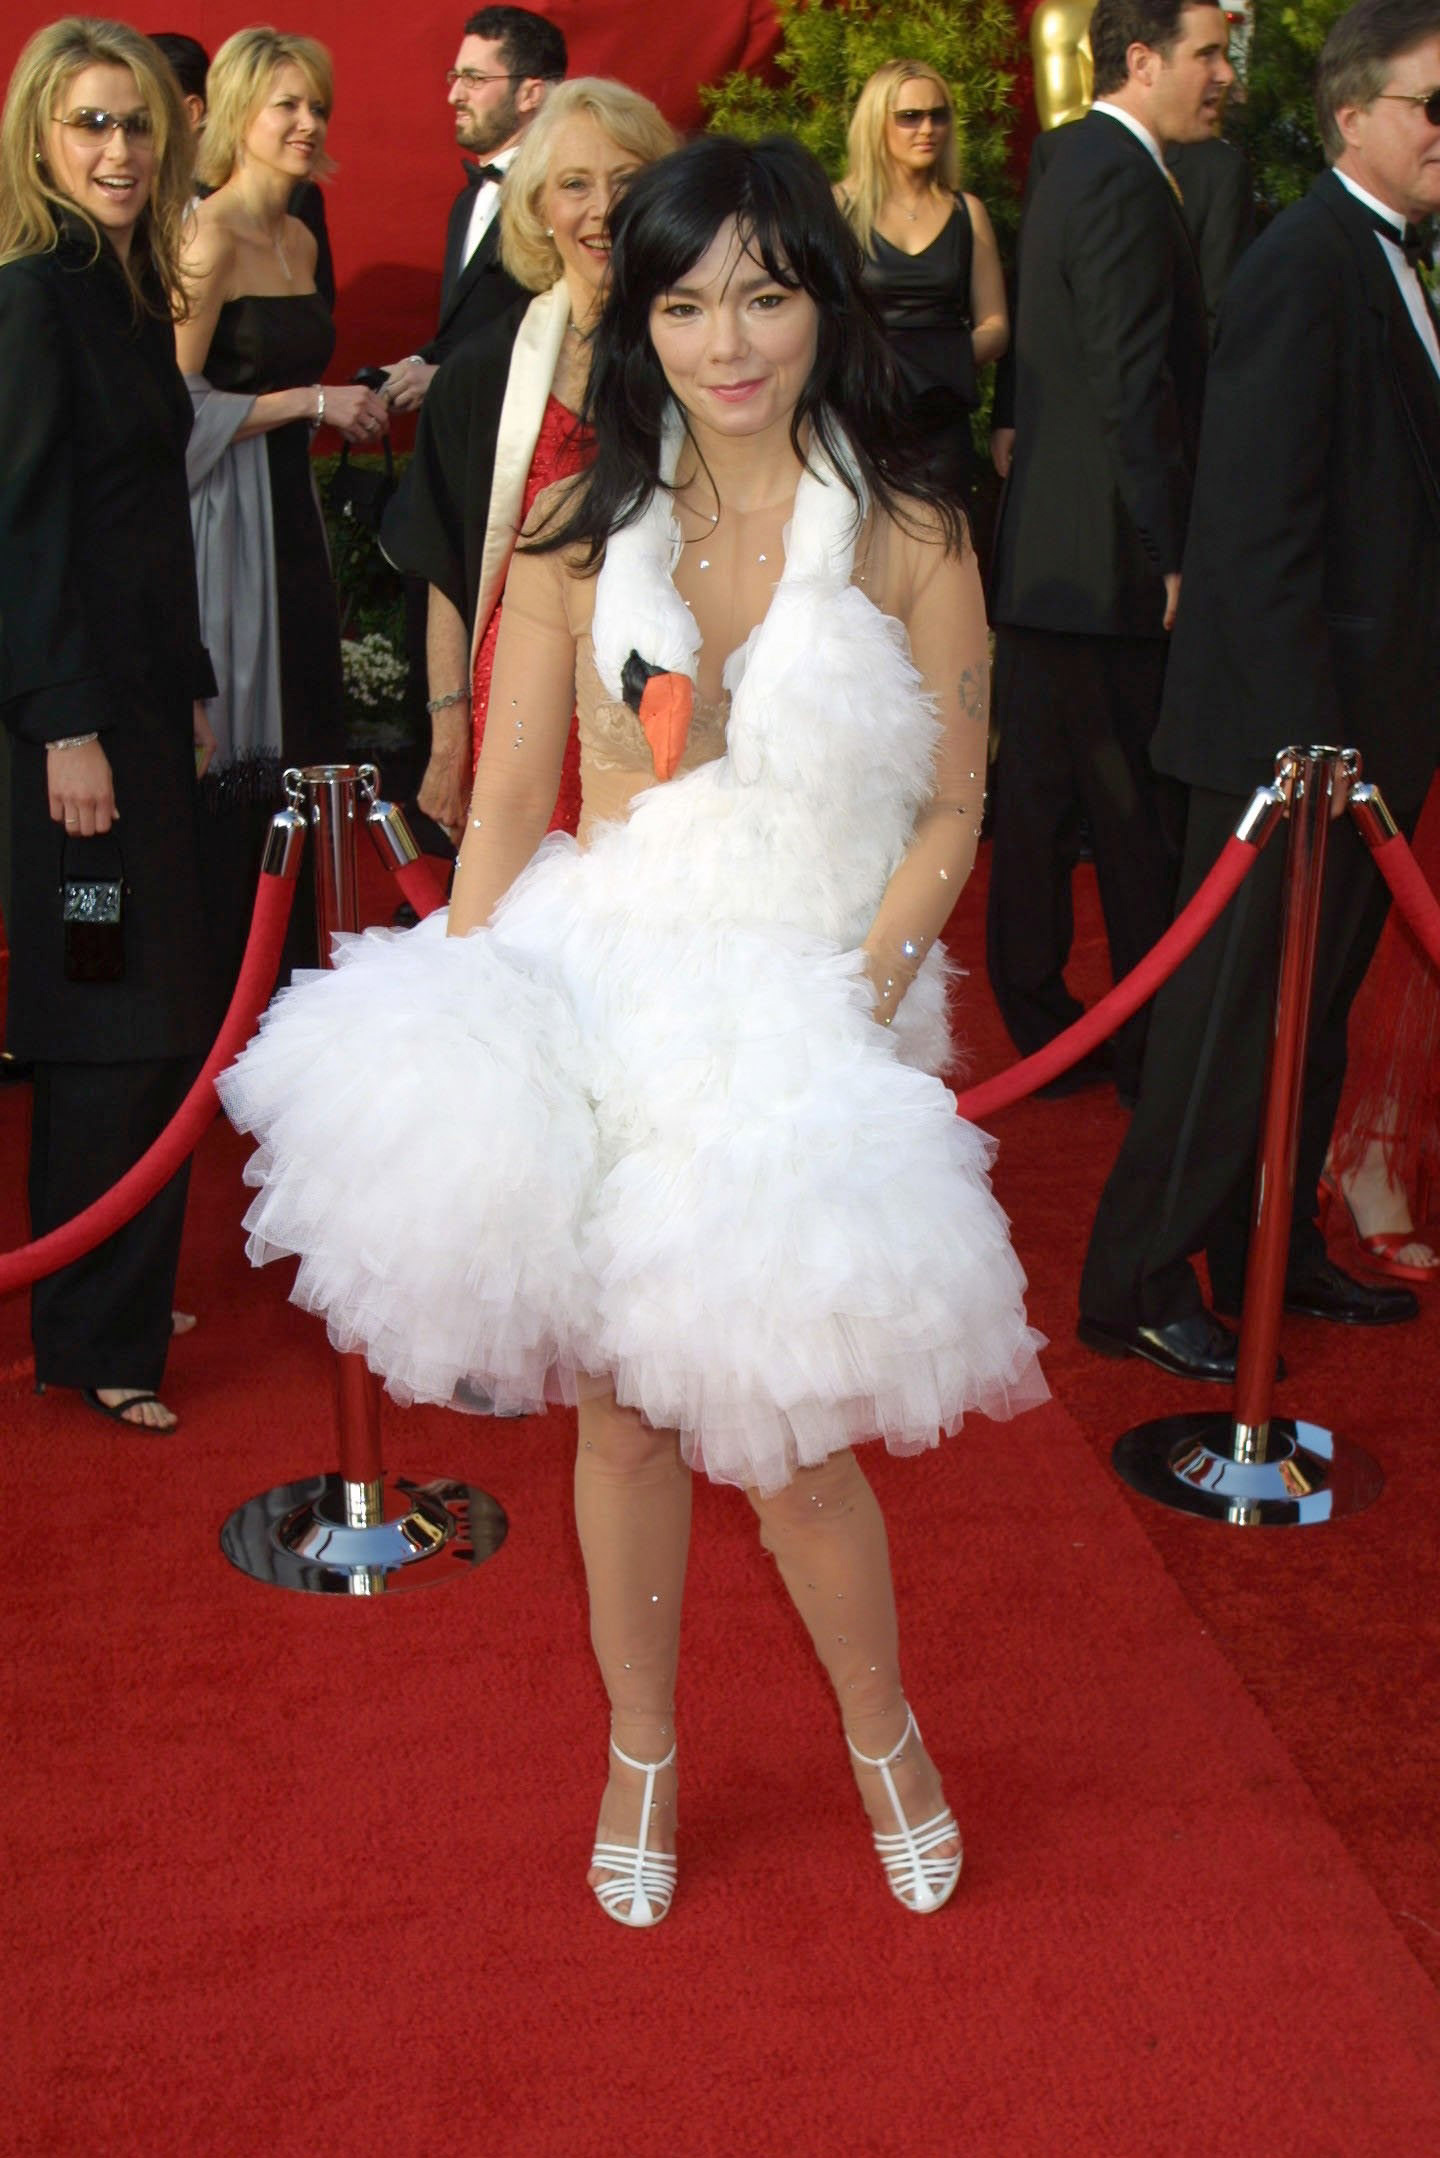 Björk at the 73rd Annual Academy Awards in Los Angeles on March 25, 2001.